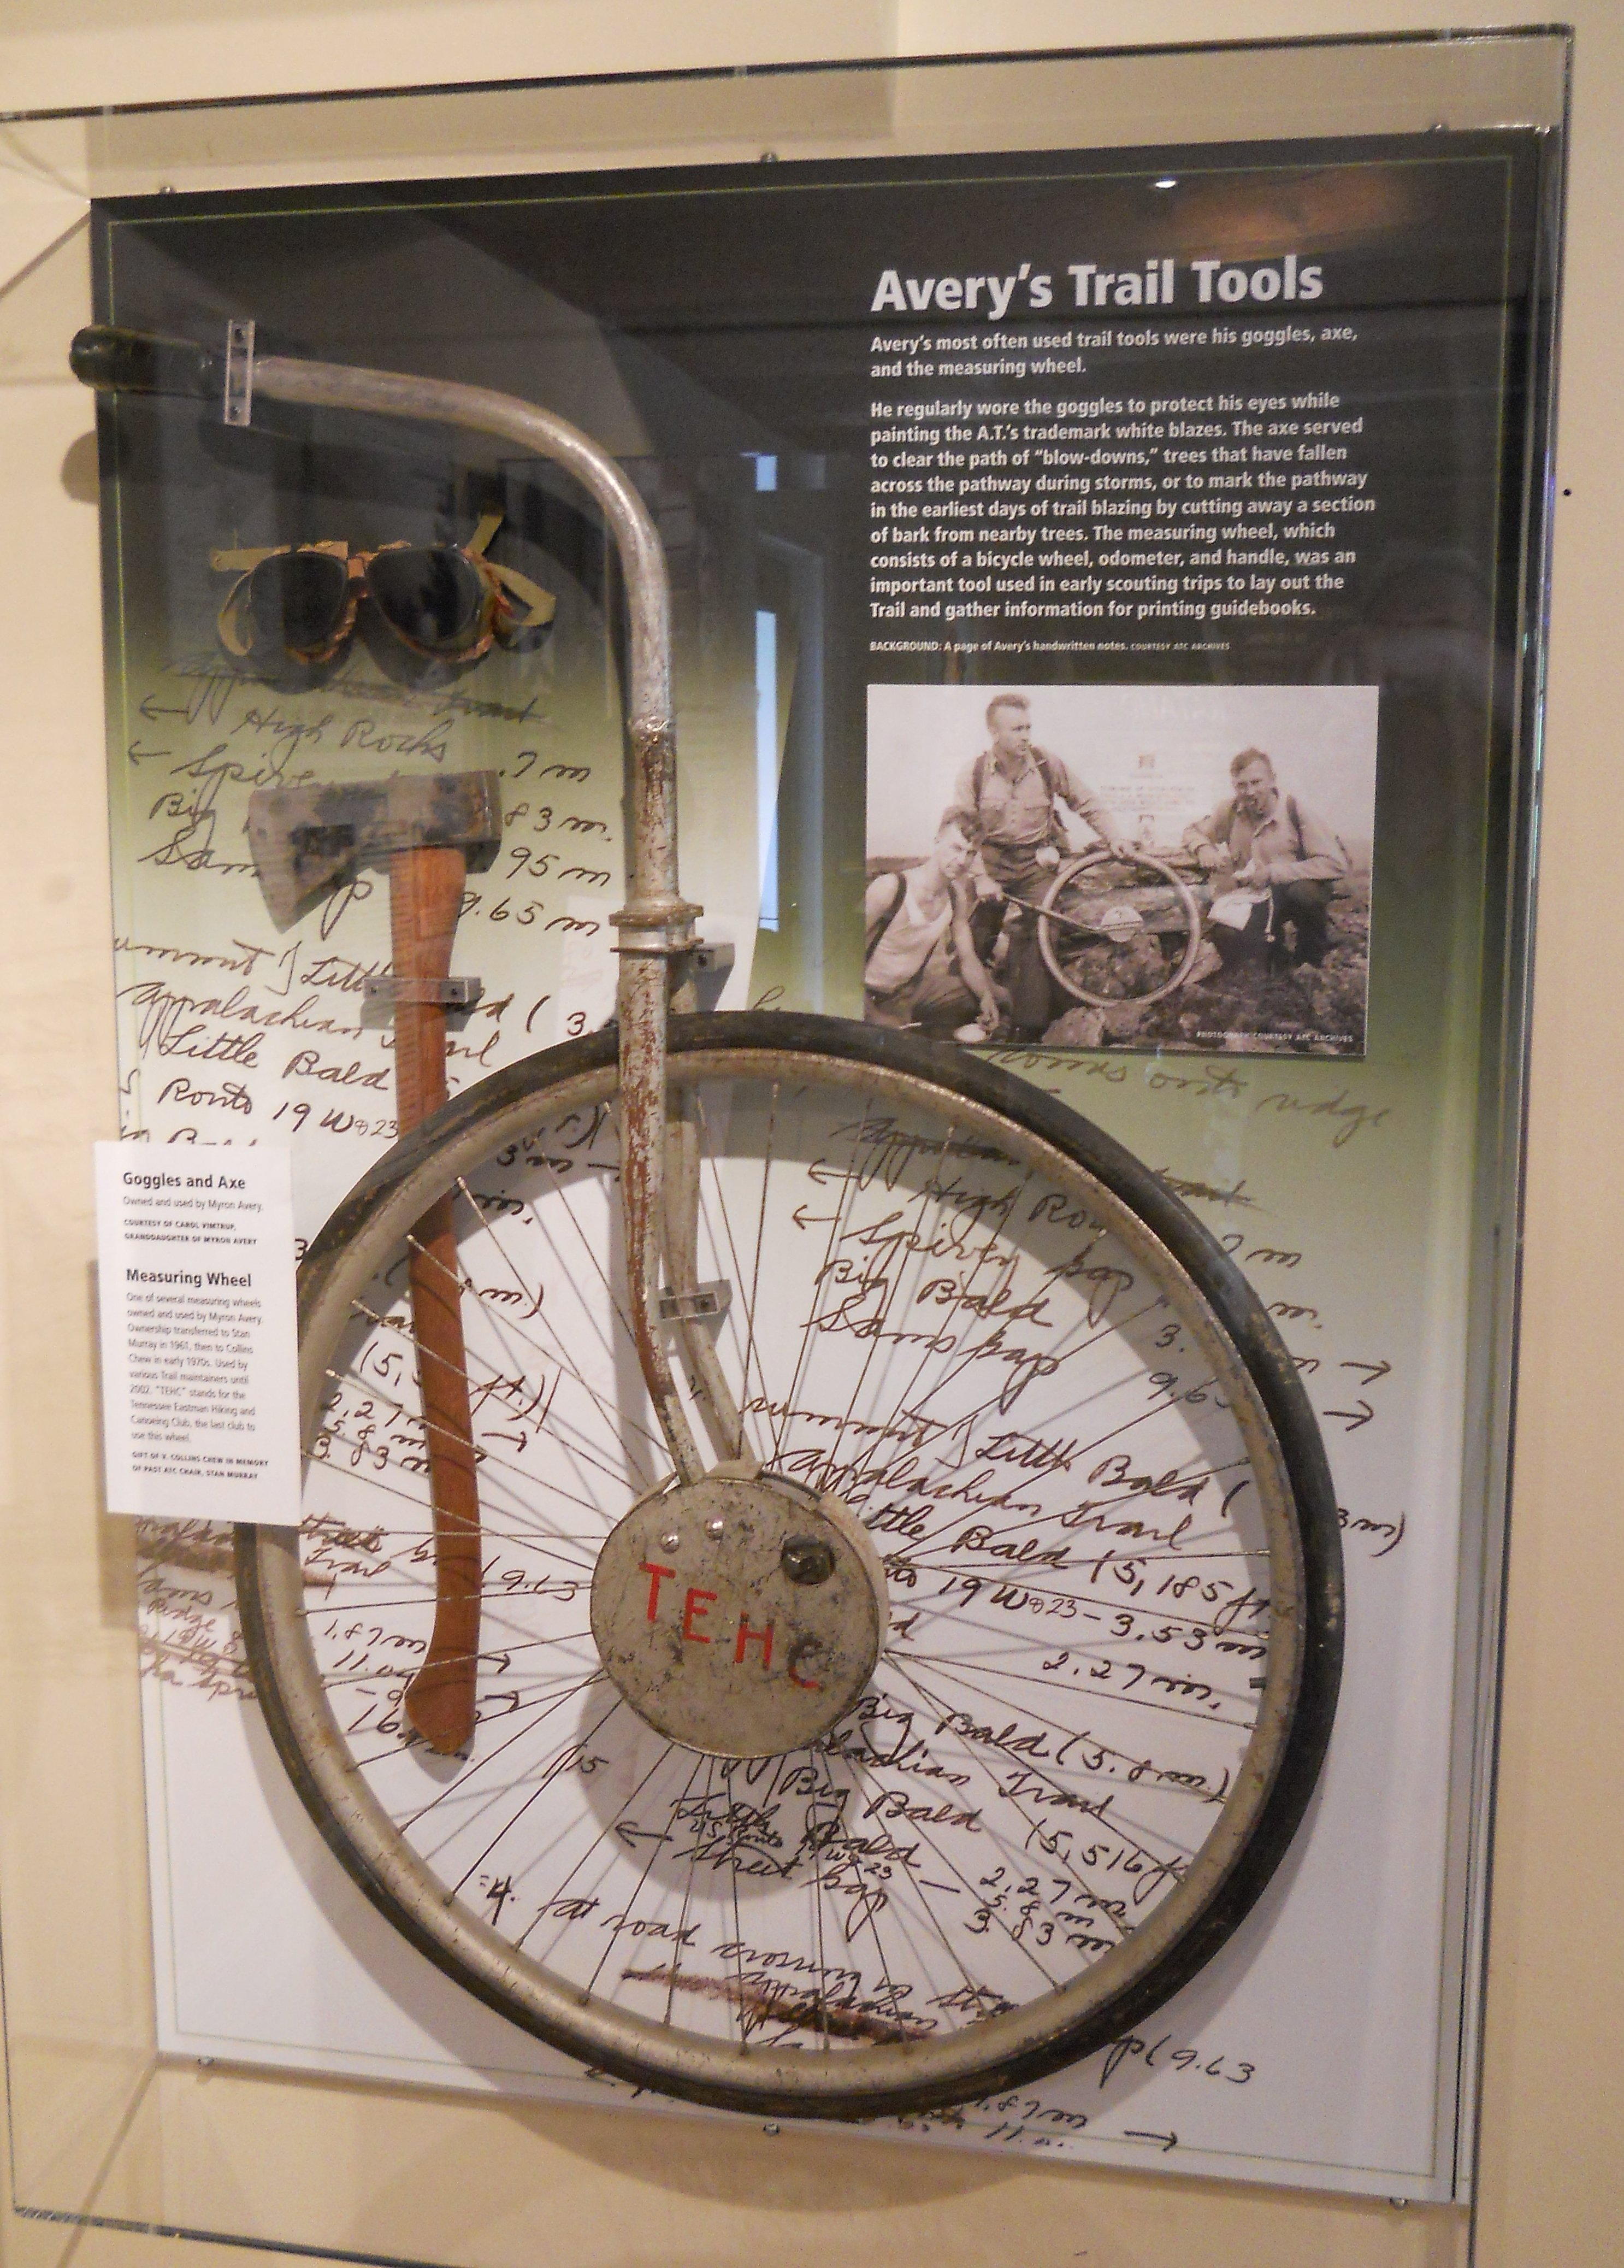 A measuring wheel used to determine the distance of the A.T.